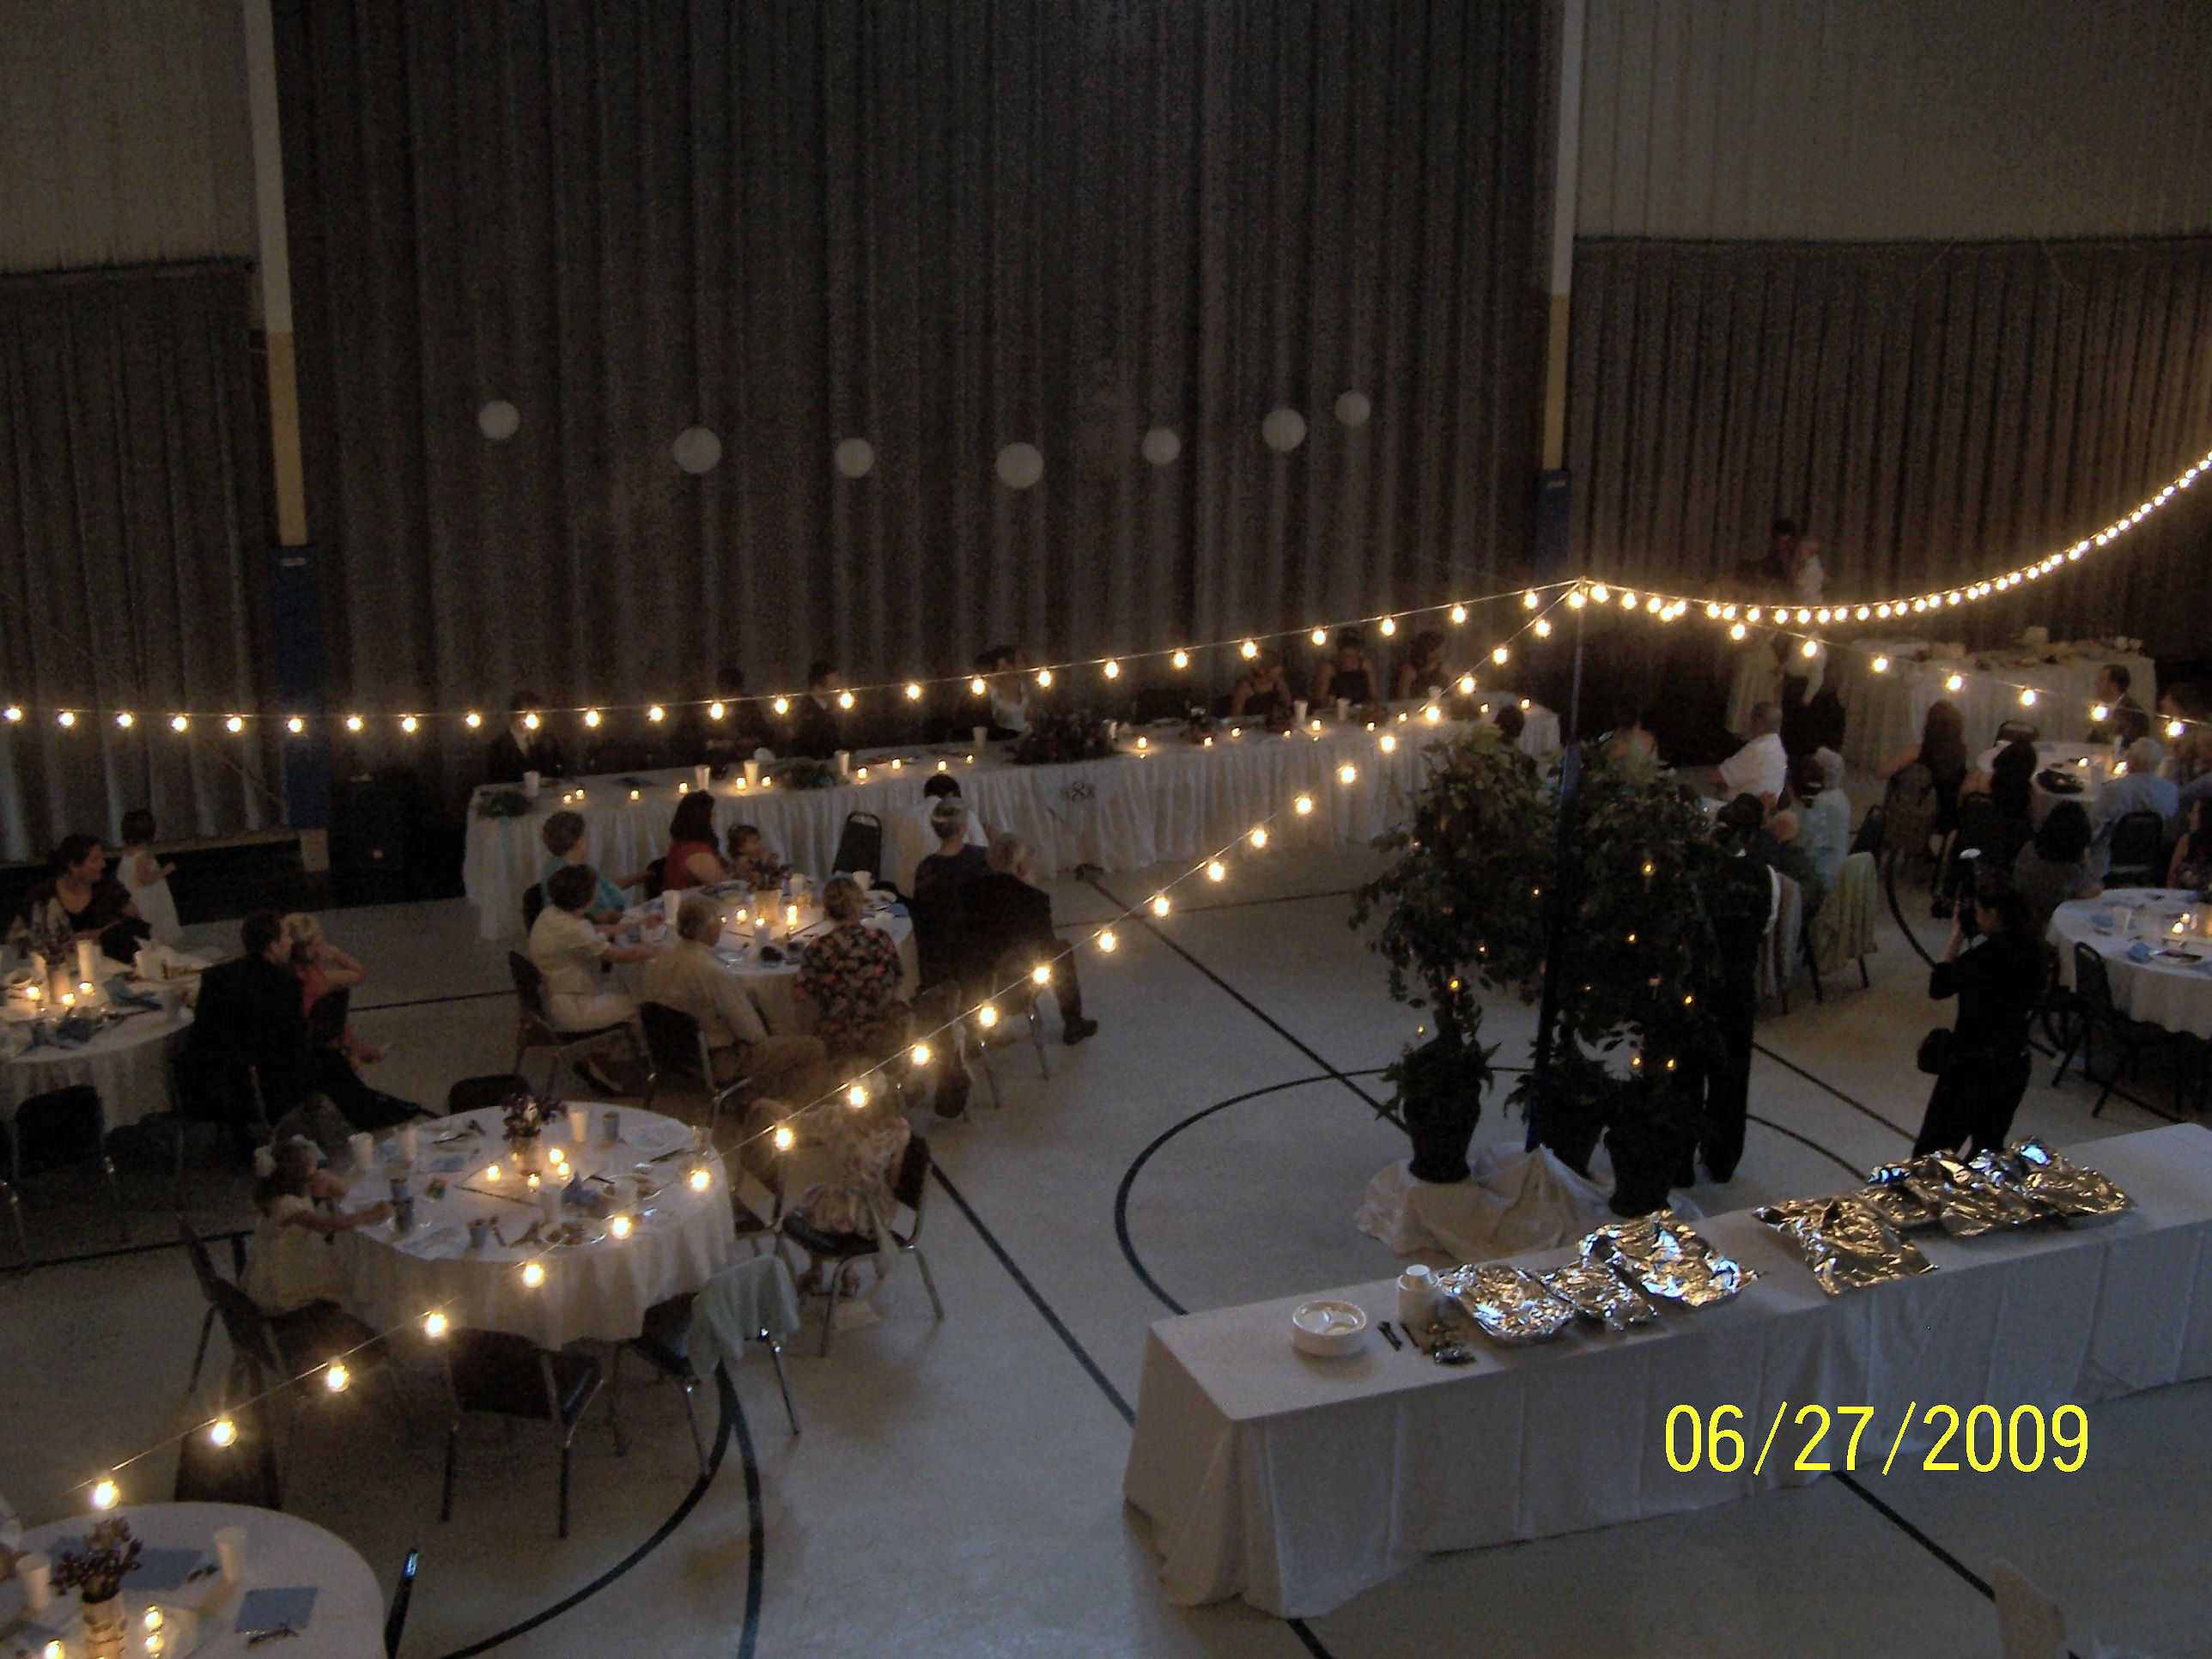 The New Gym decorated for wedding reception